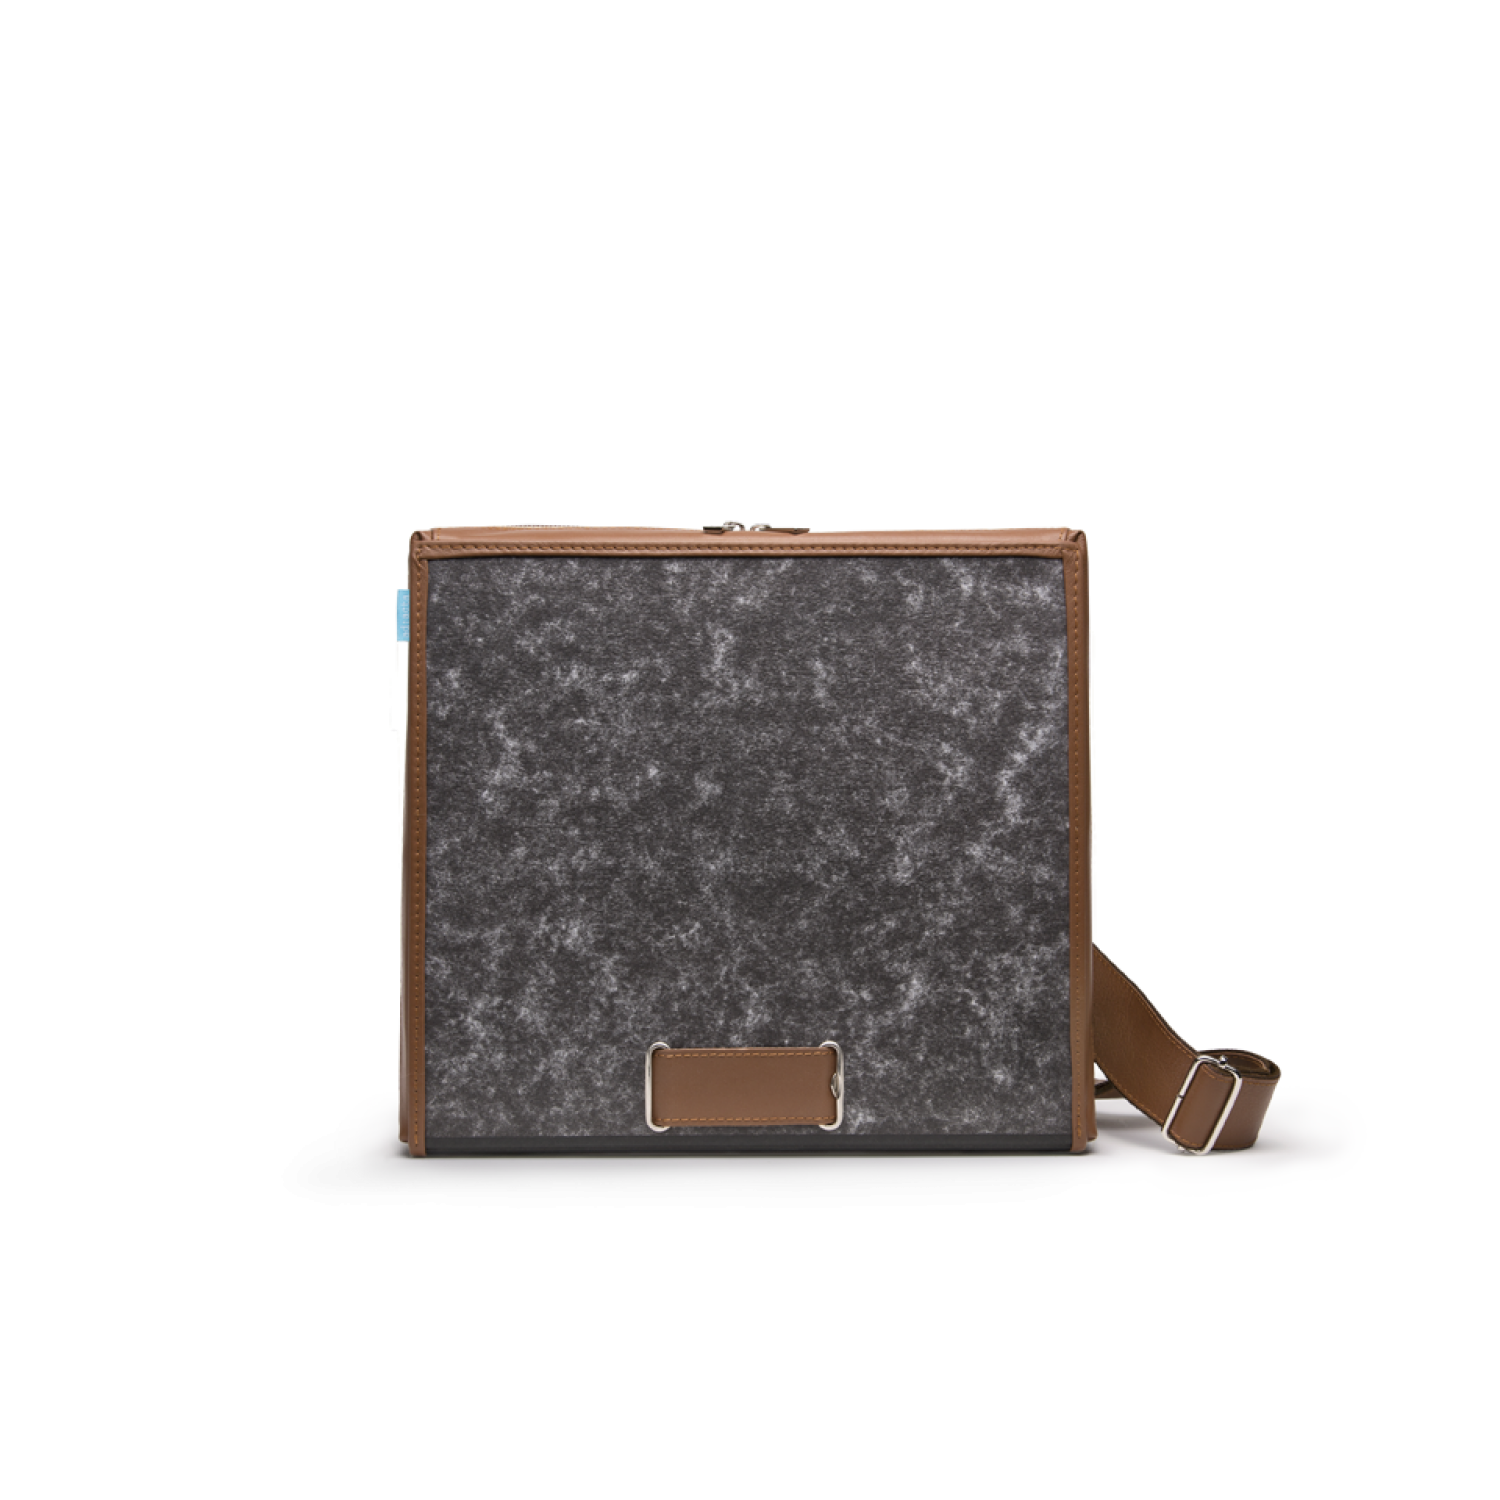 Upcycled brown Laptop Bag & Leather Briefcase | ad:acta